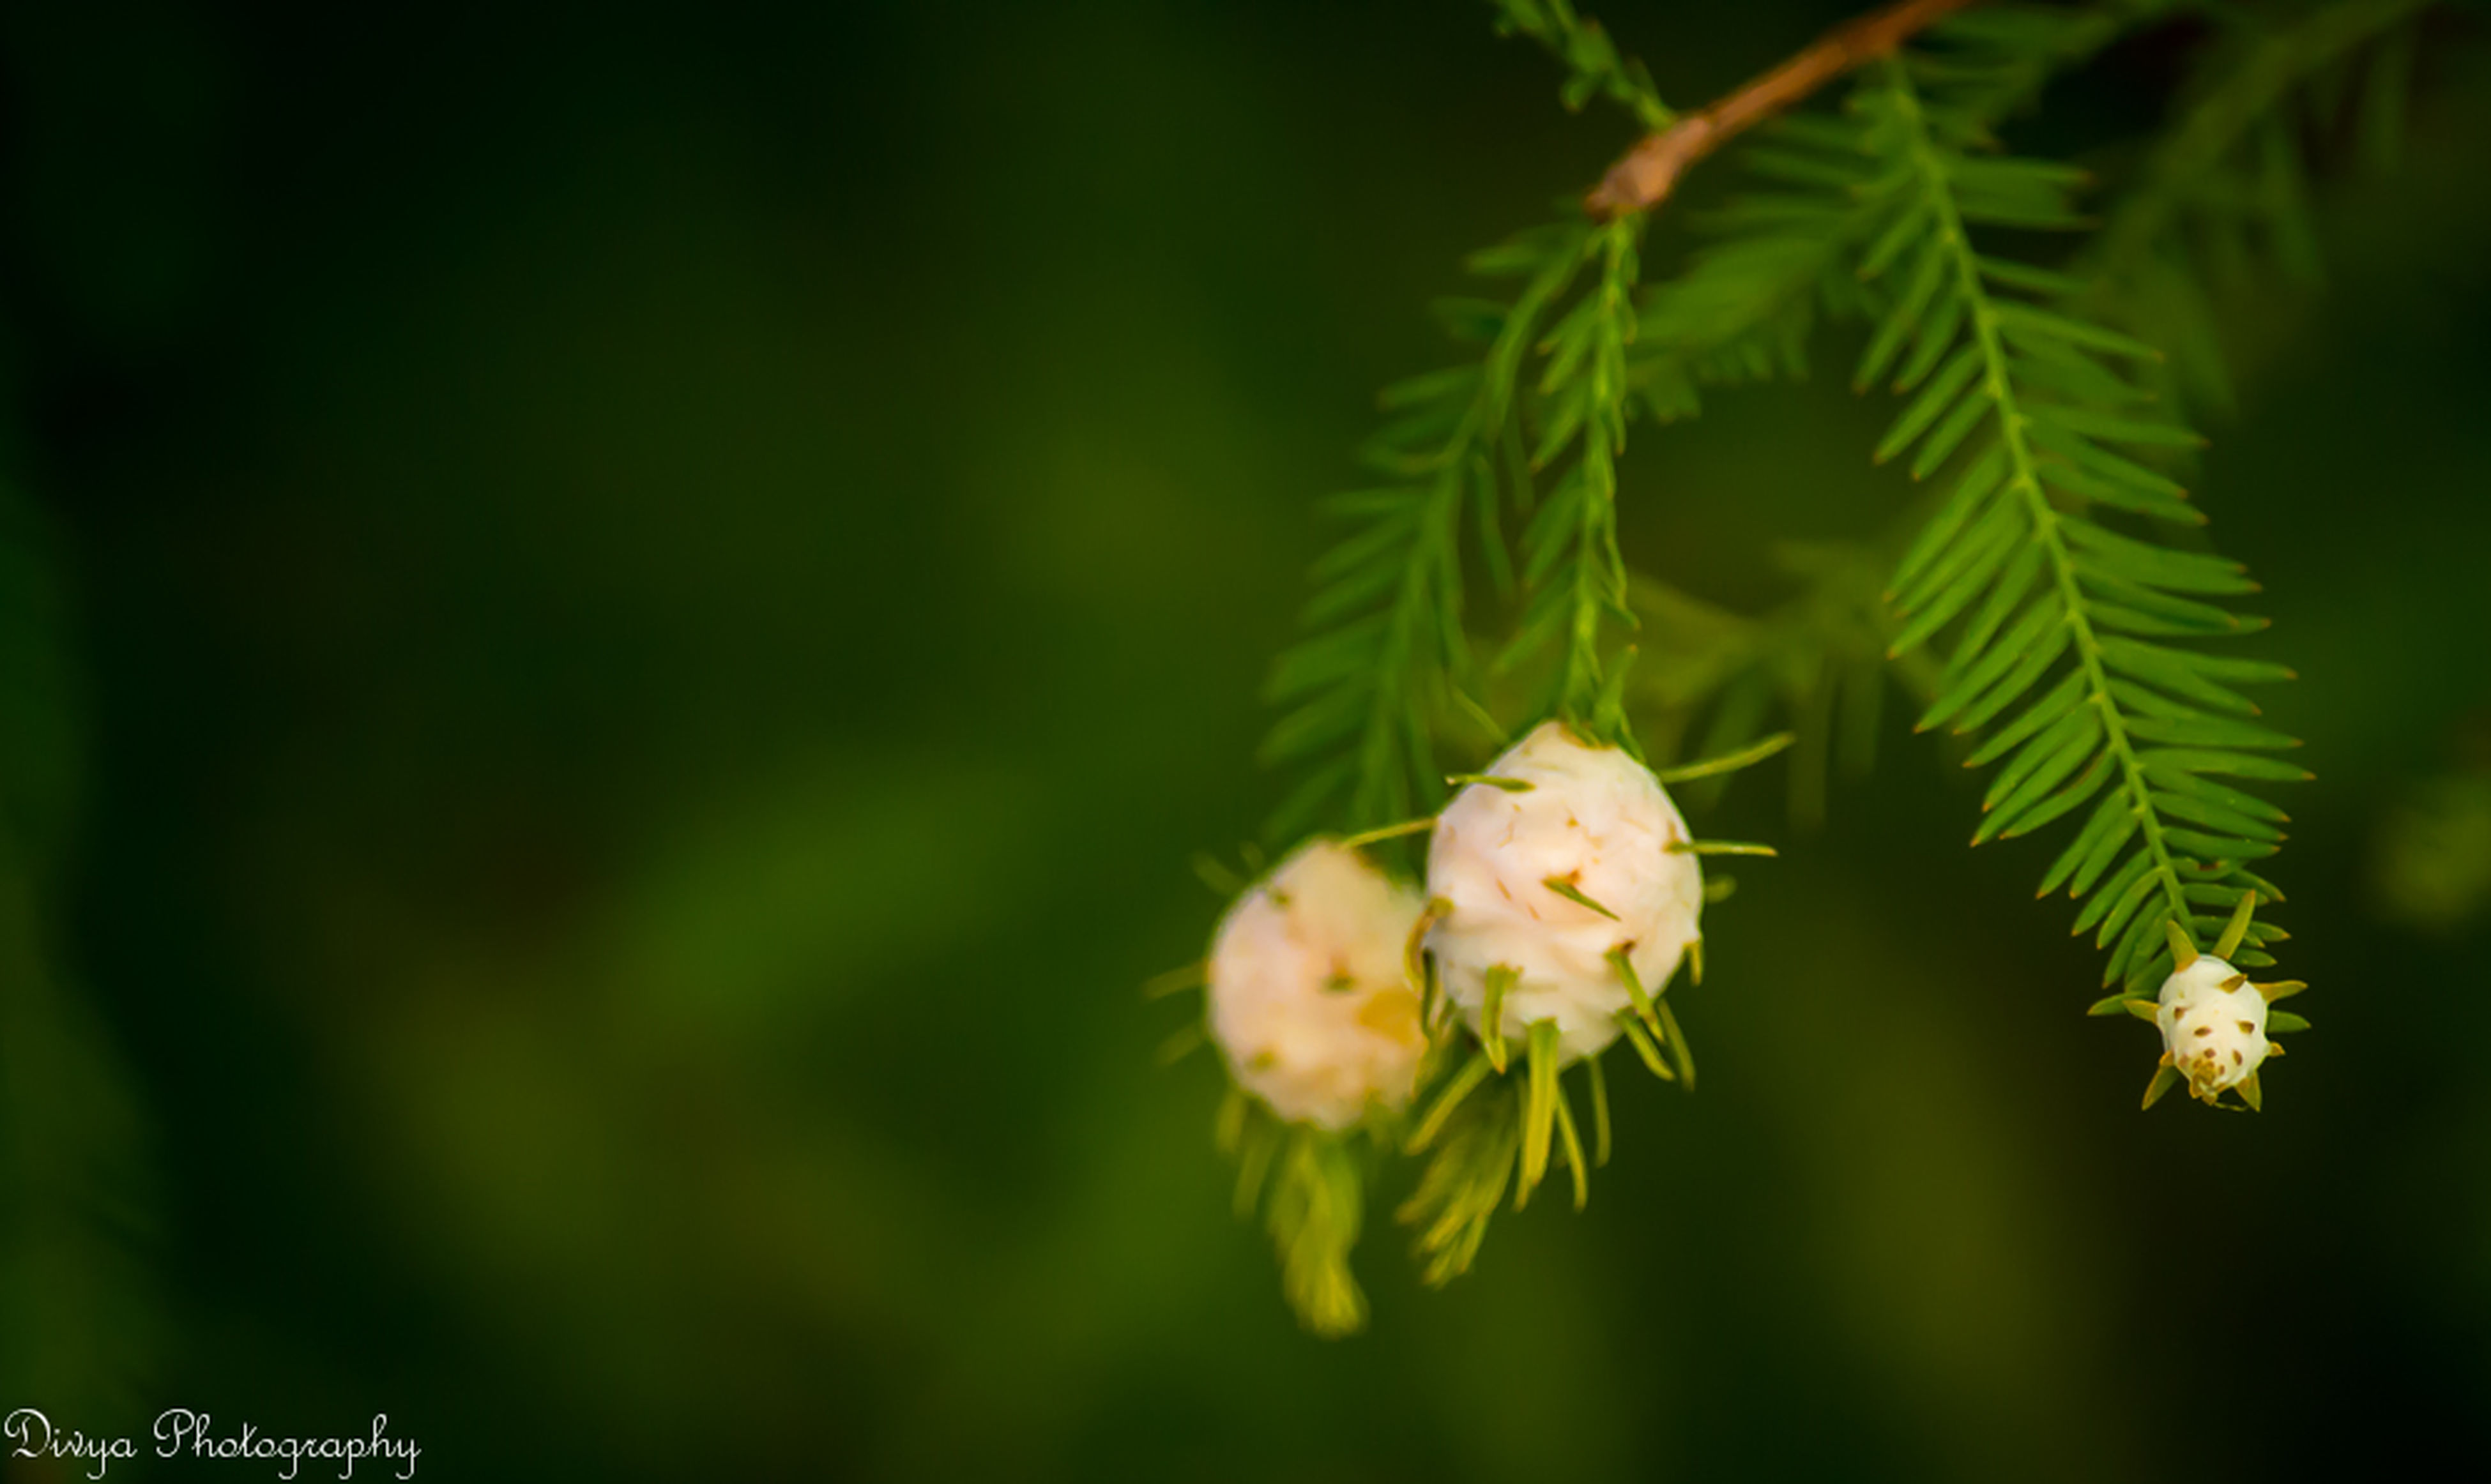 flower, growth, freshness, fragility, petal, focus on foreground, flower head, beauty in nature, close-up, white color, nature, blooming, plant, in bloom, park - man made space, blossom, selective focus, outdoors, botany, stem